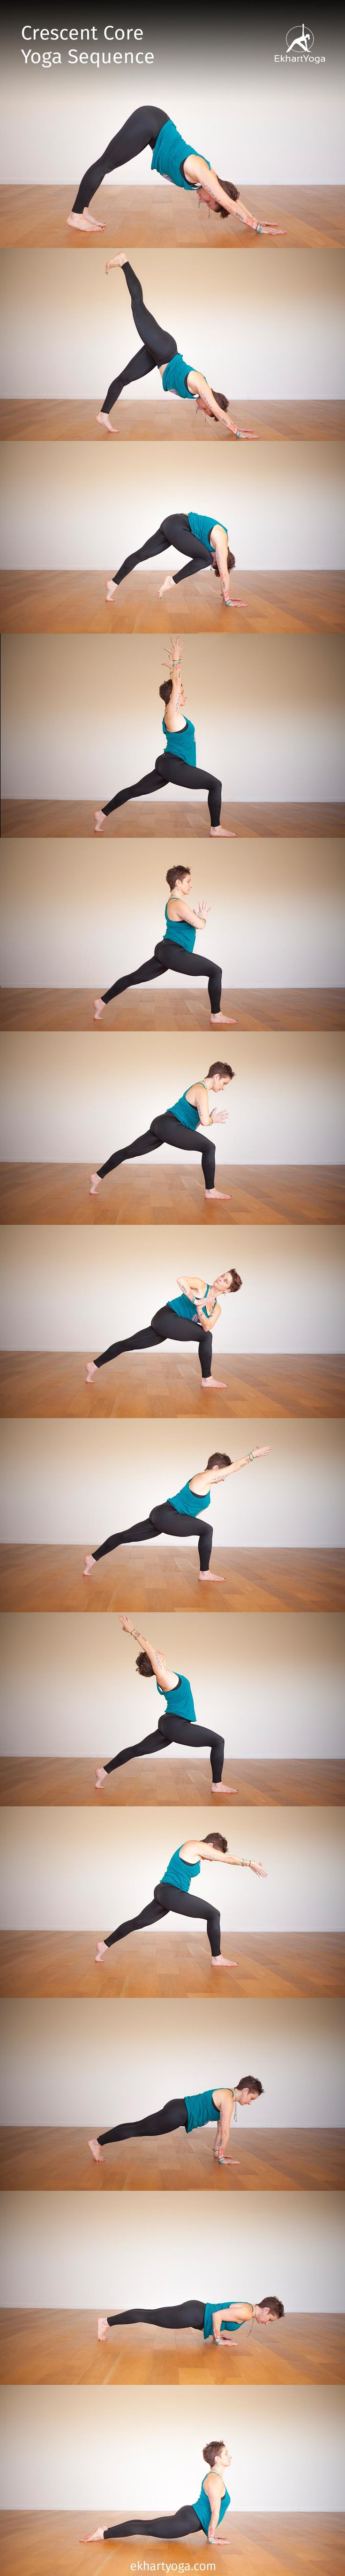 Crescent Core Yoga Sequence from Jennilee Toner on EkahrtYoga.com